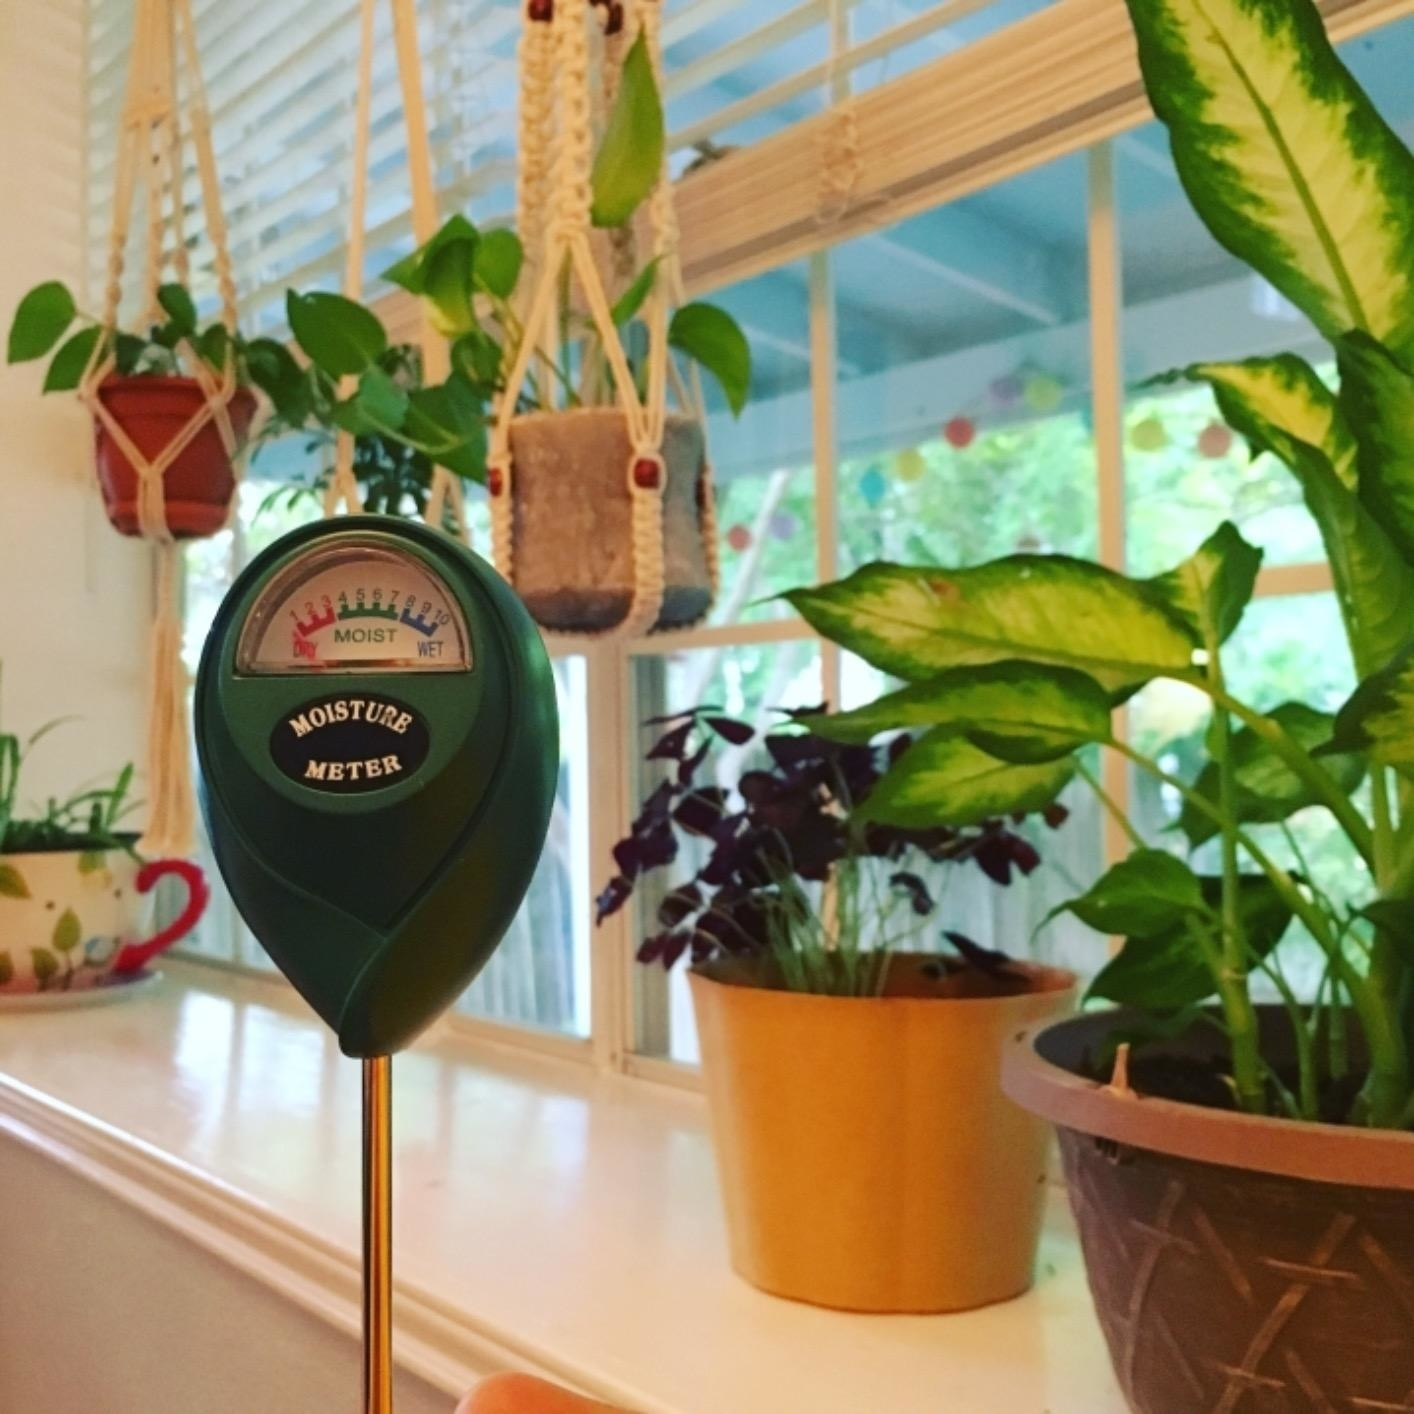 The moisture meter in front of a windowsill full of plants